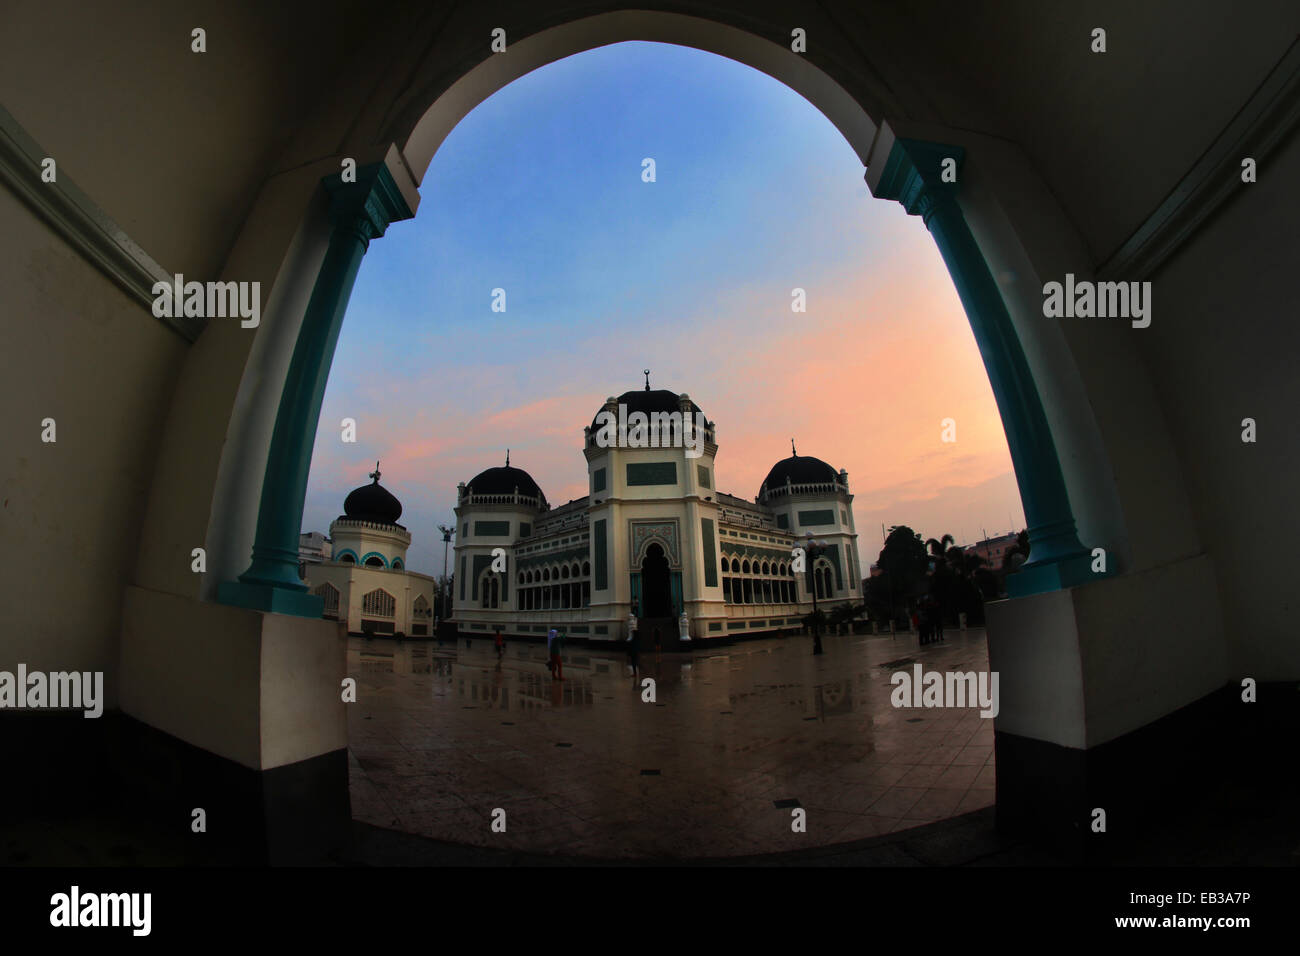 View of mosque in town square from arch way - Stock Image